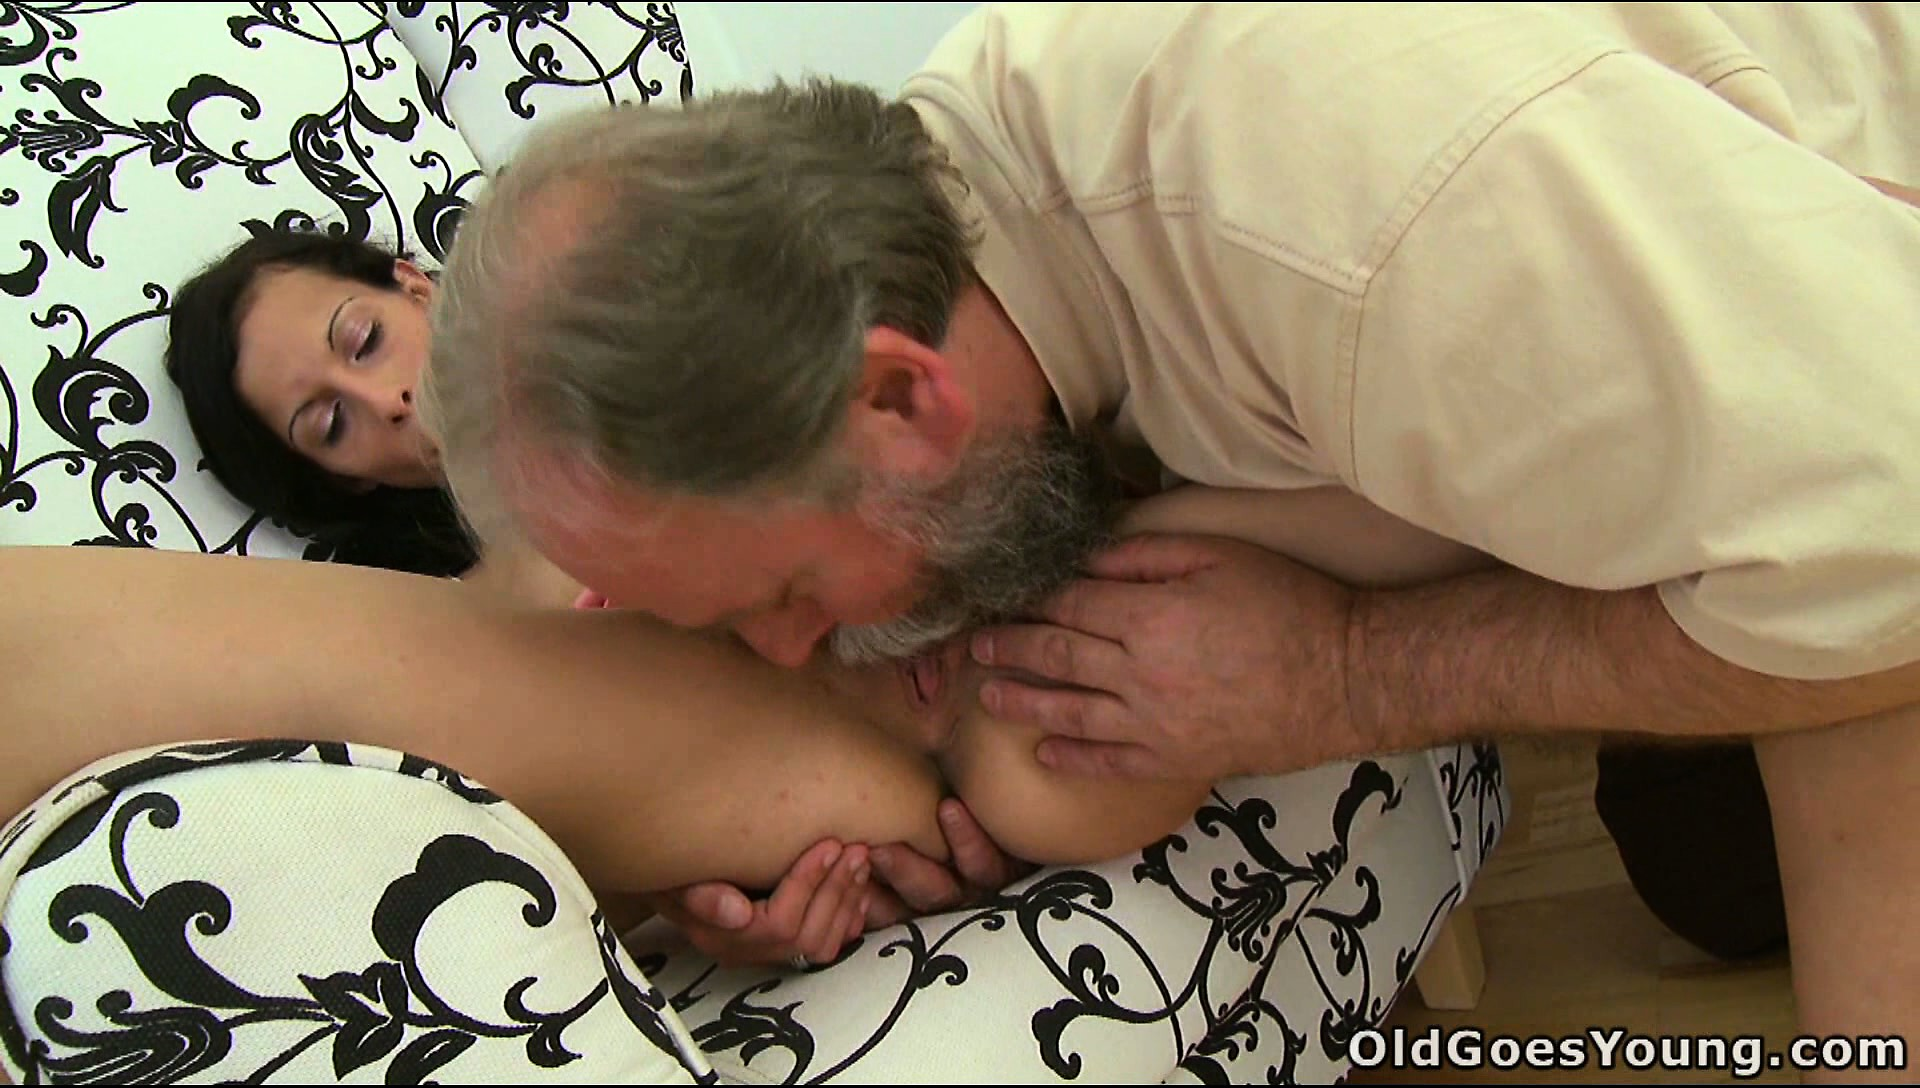 Porno Video of Skinny Young Brunette, Tonia, Gets A Horny Old Man To Please